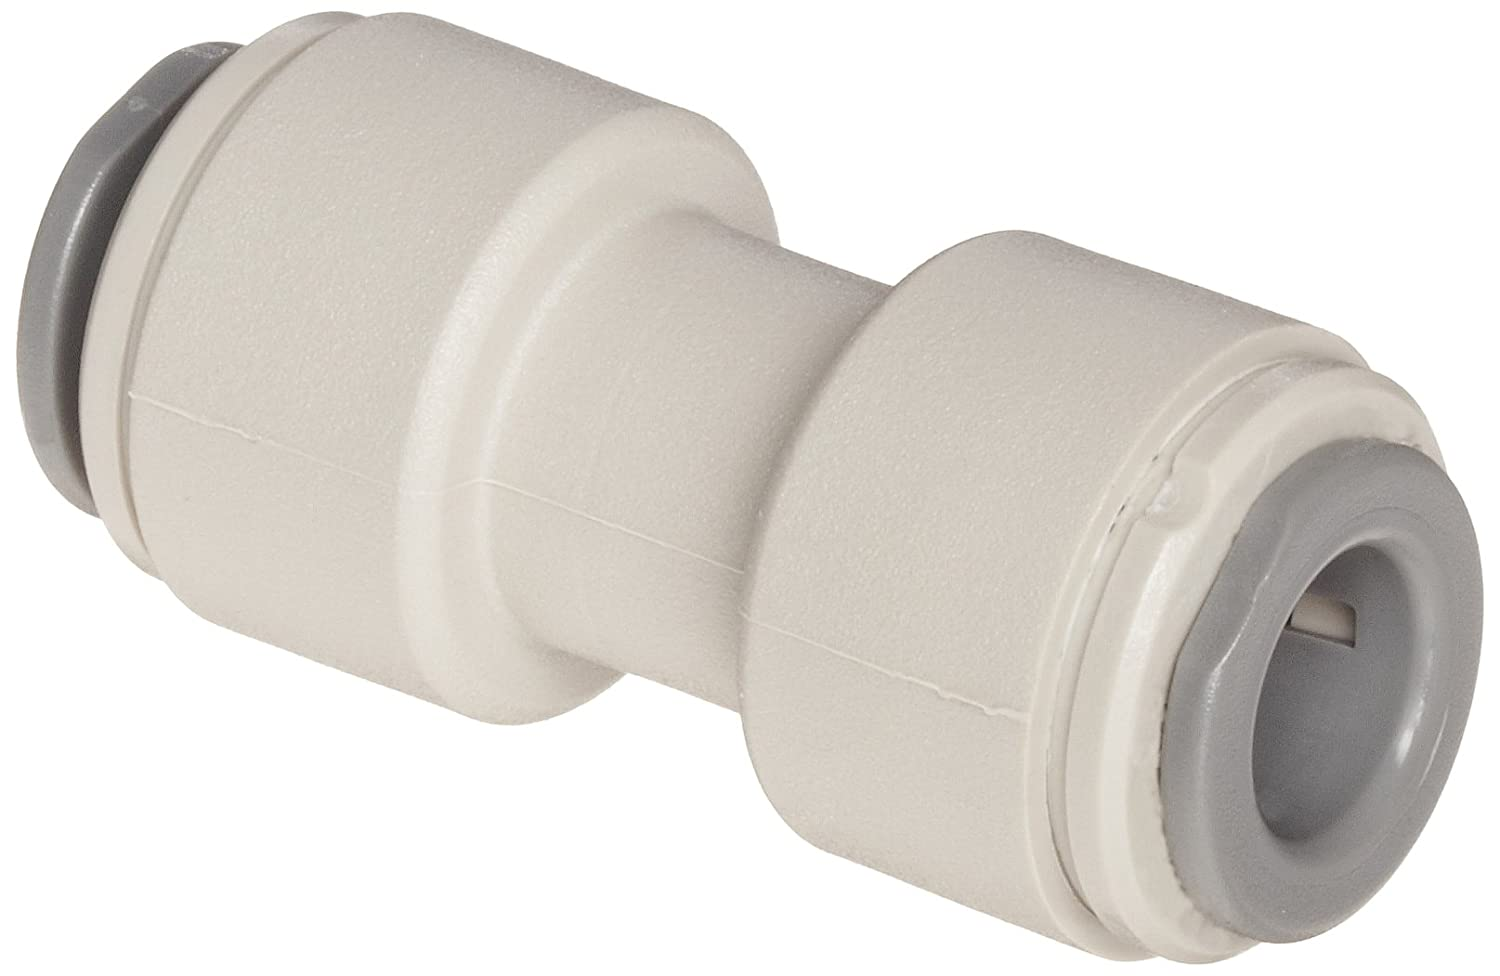 "John Guest Acetal Copolymer Tube Fitting, Union Straight Connector, 5/16"" Tube OD (Pack of 10)"